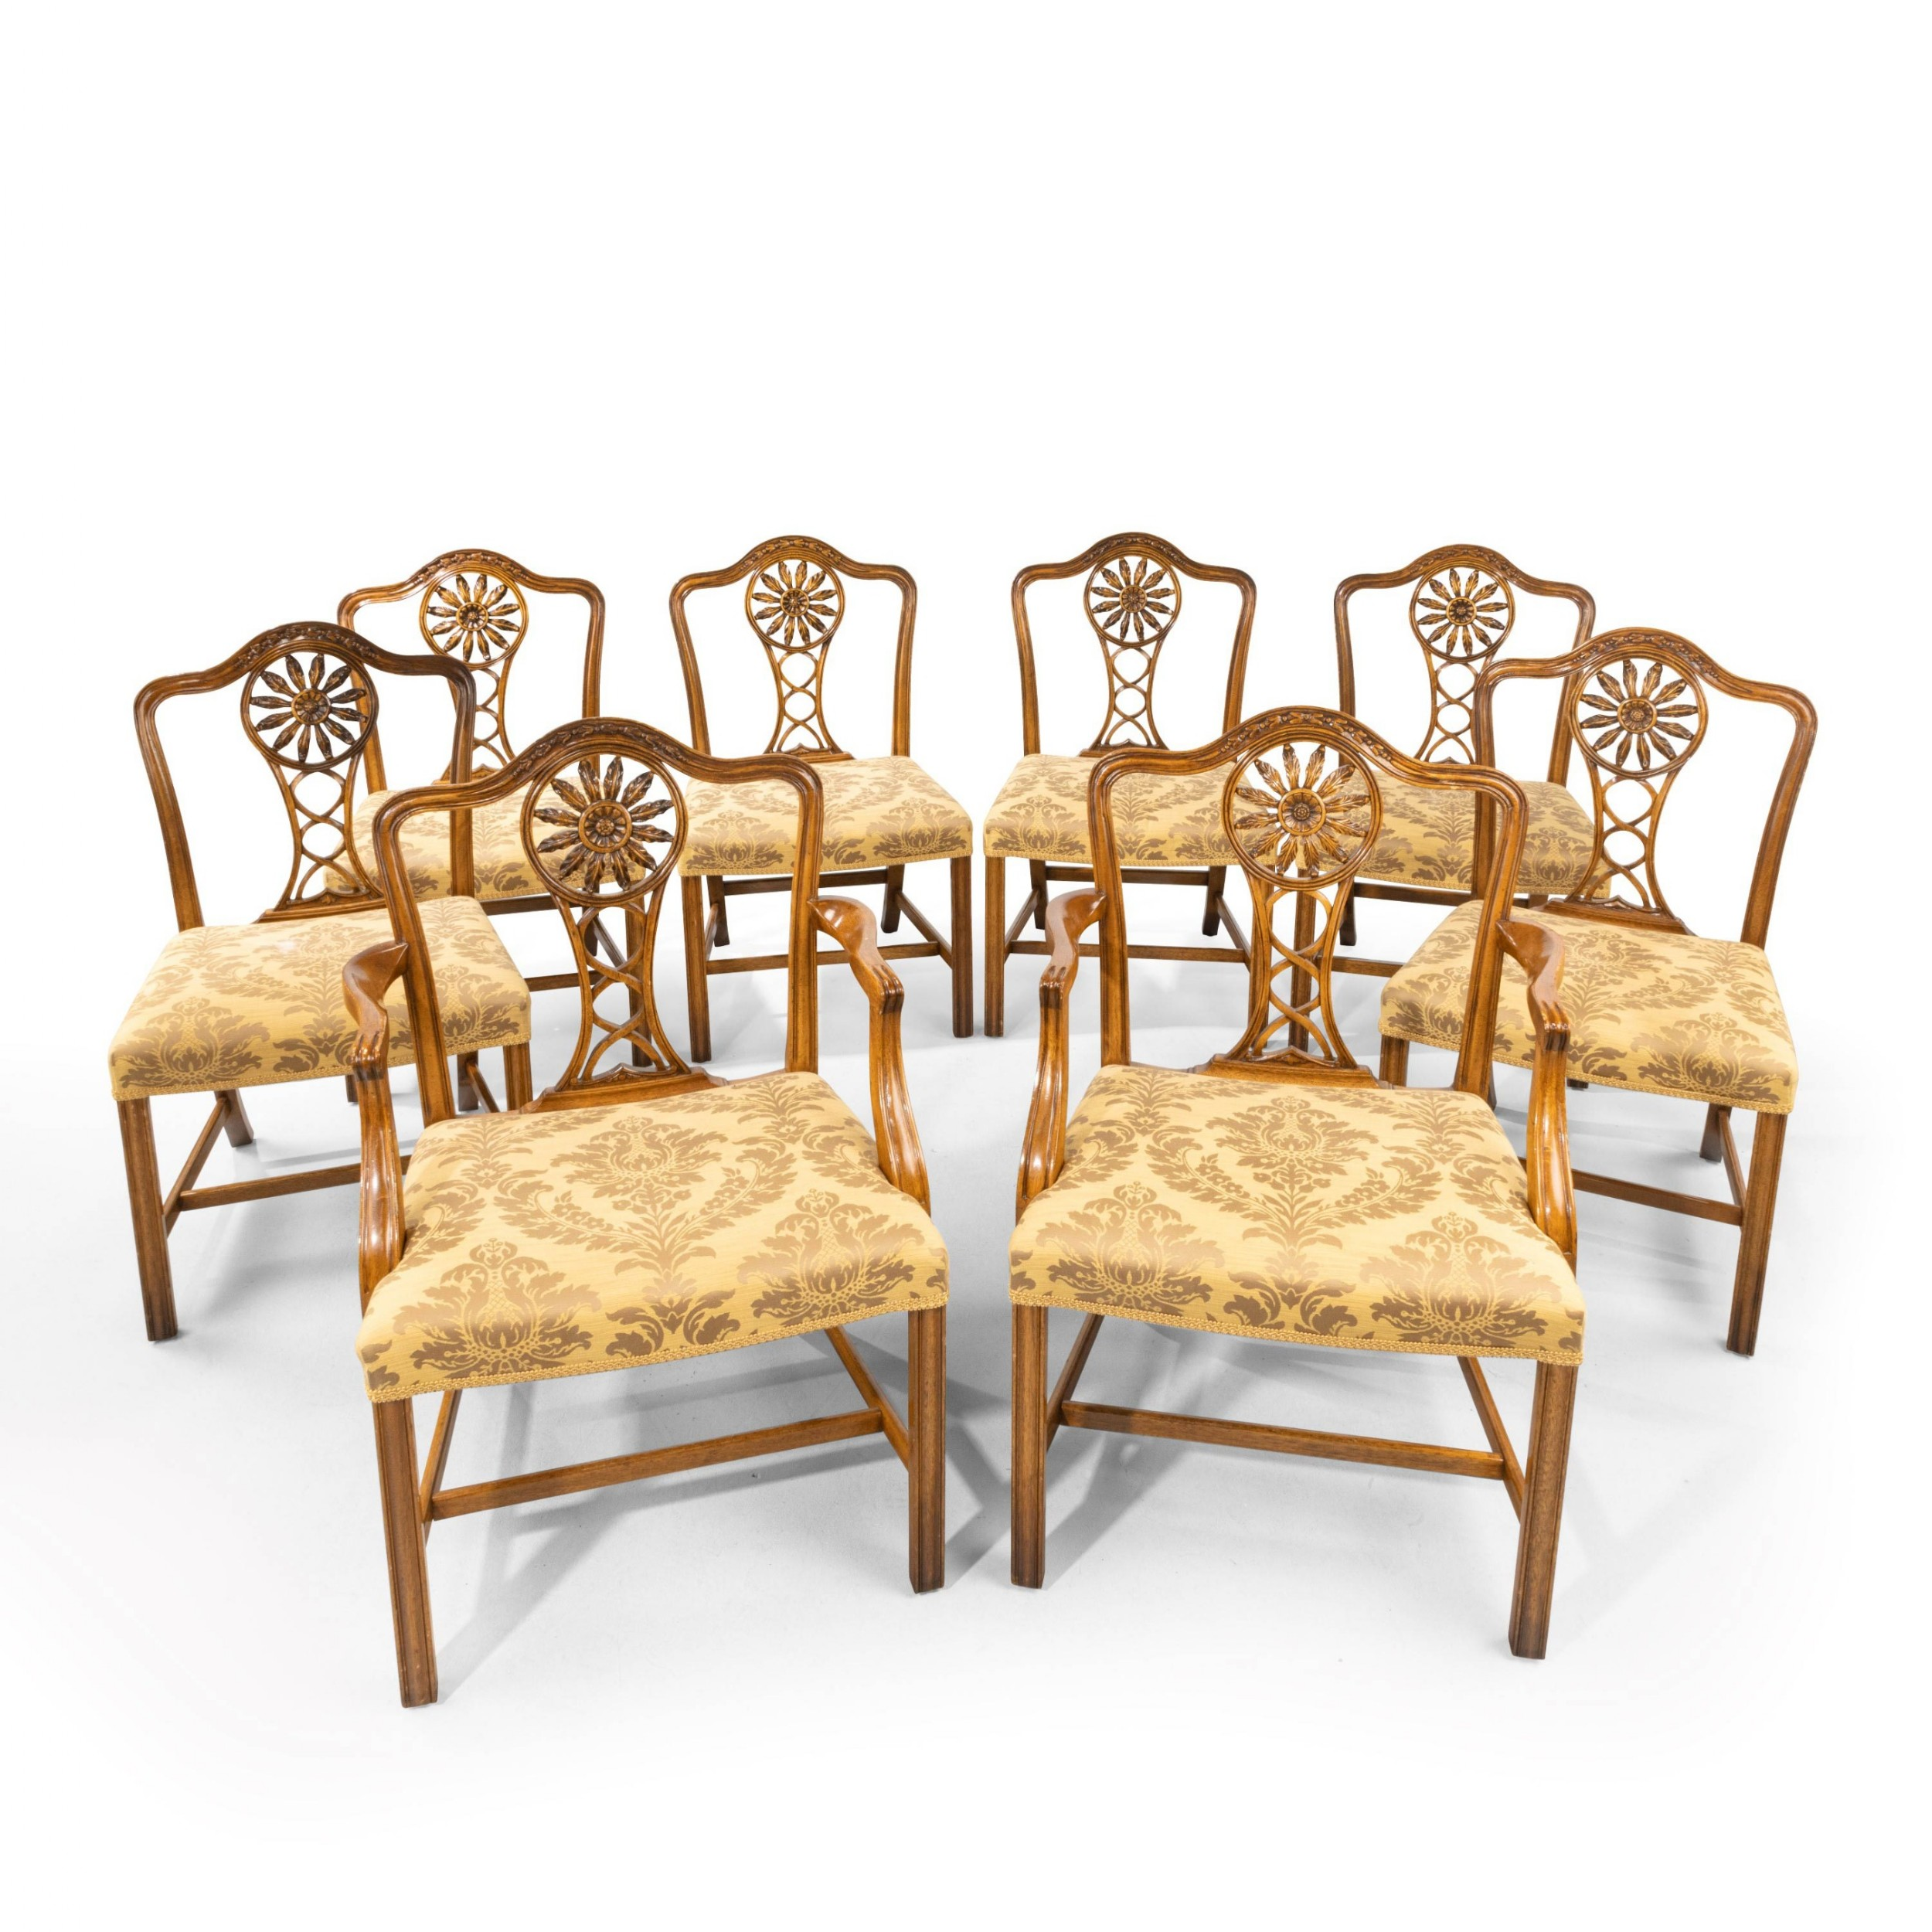 a most elegant set of eight 62 early twentieth century chippendale style mahogany framed chairs